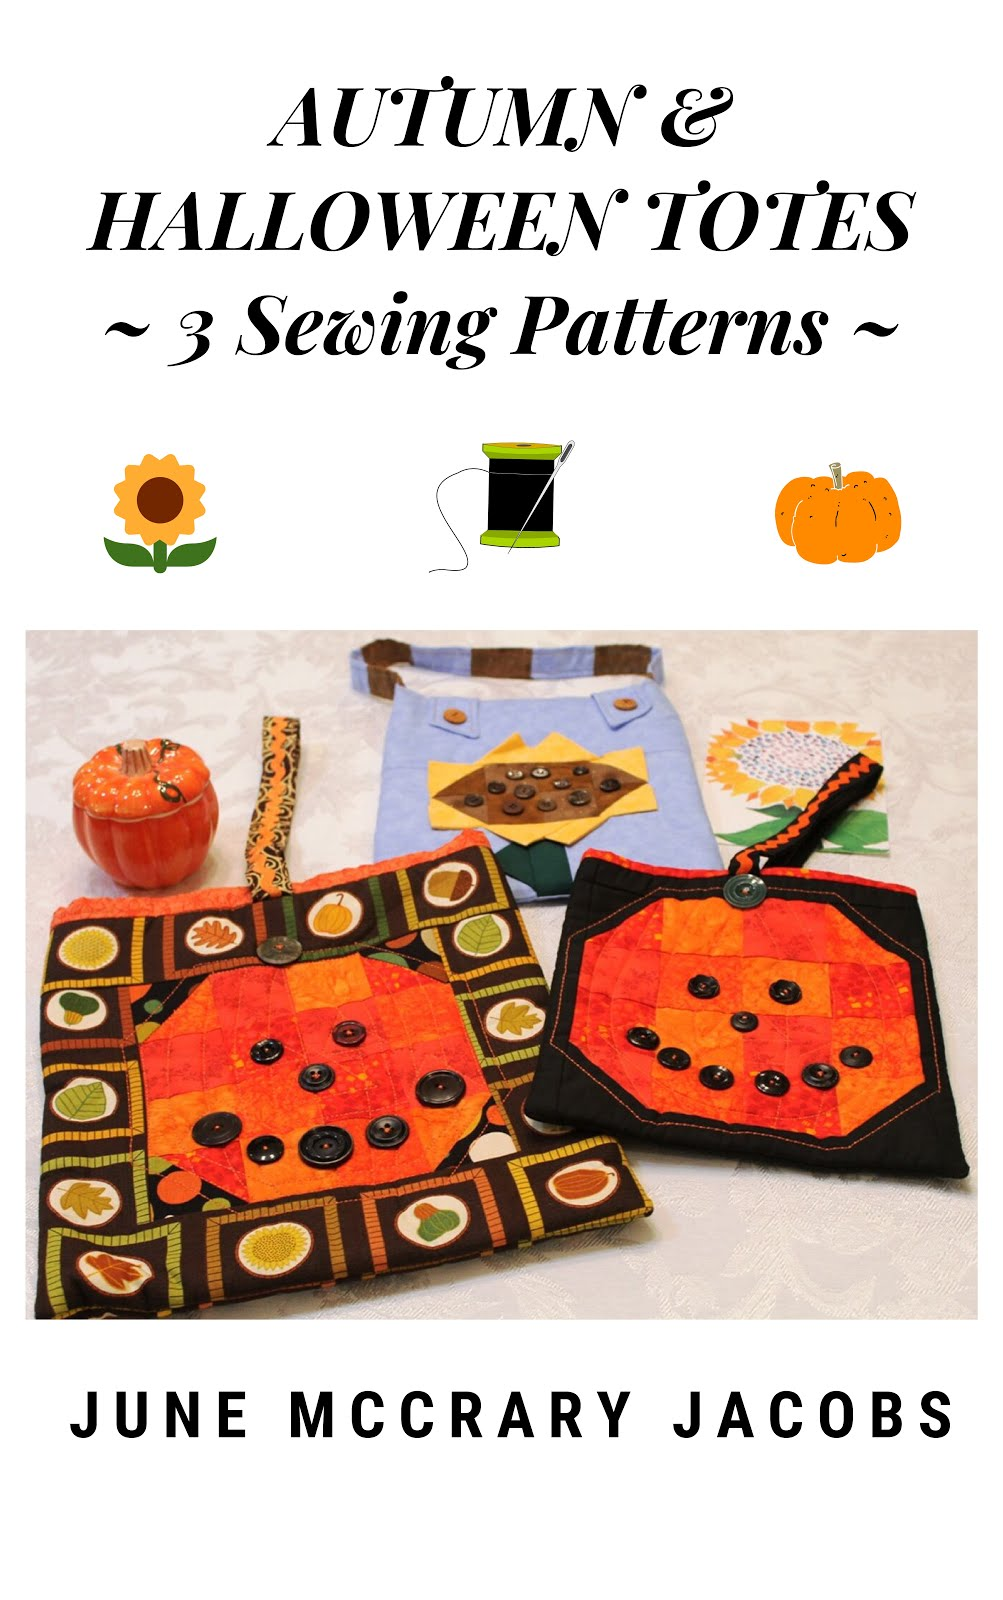 FIND 'AUTUMN & HALLOWEEN TOTES:  3 SEWING PATTERNS' ON AMAZON